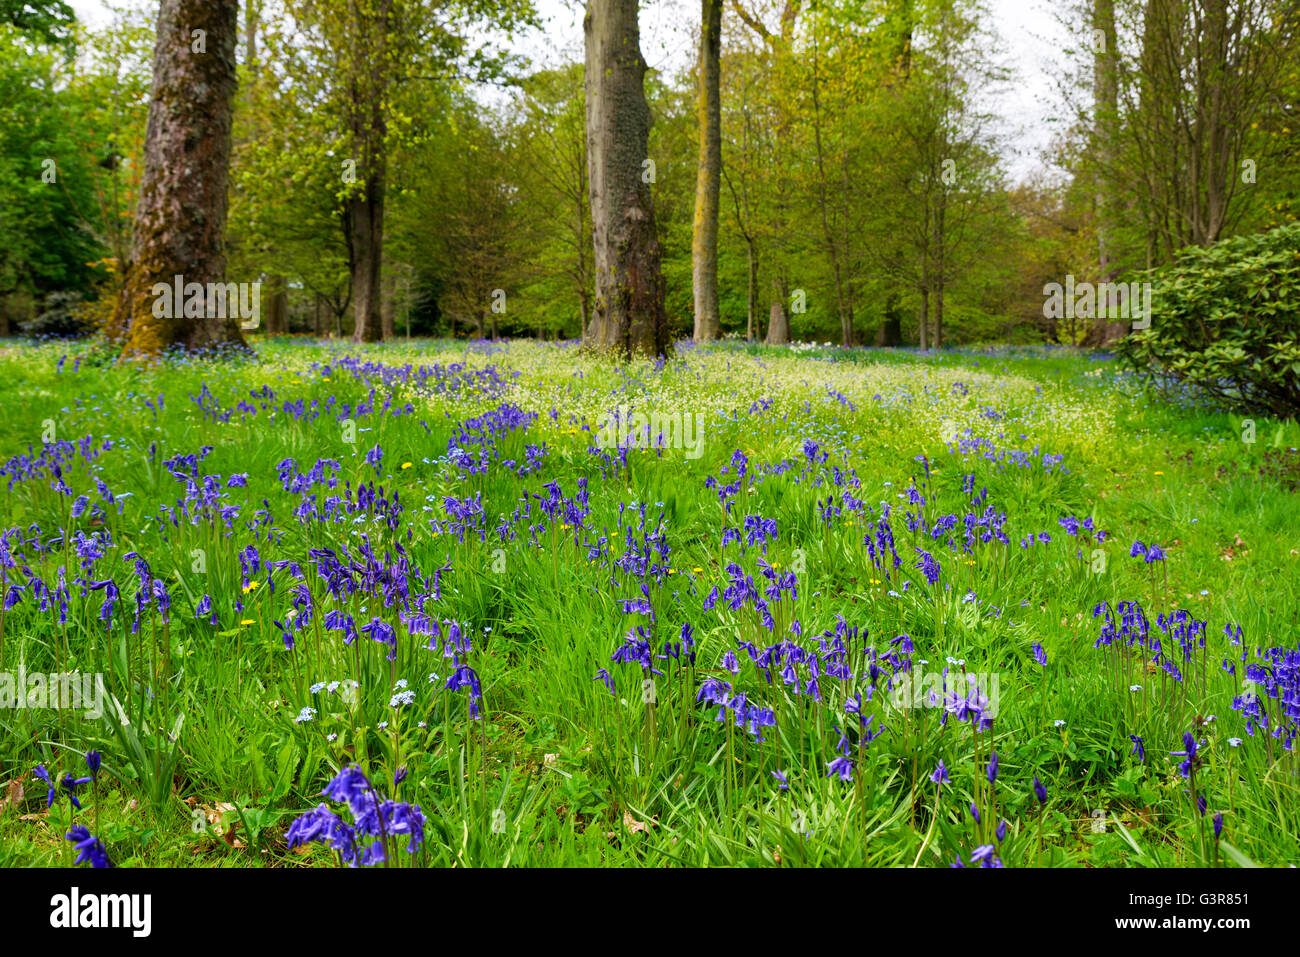 Bluebells (Hyacinthoides non scripta) in un bosco a piani Castello, a Kelso, Scottish Borders, Scotland, Regno Unito Immagini Stock